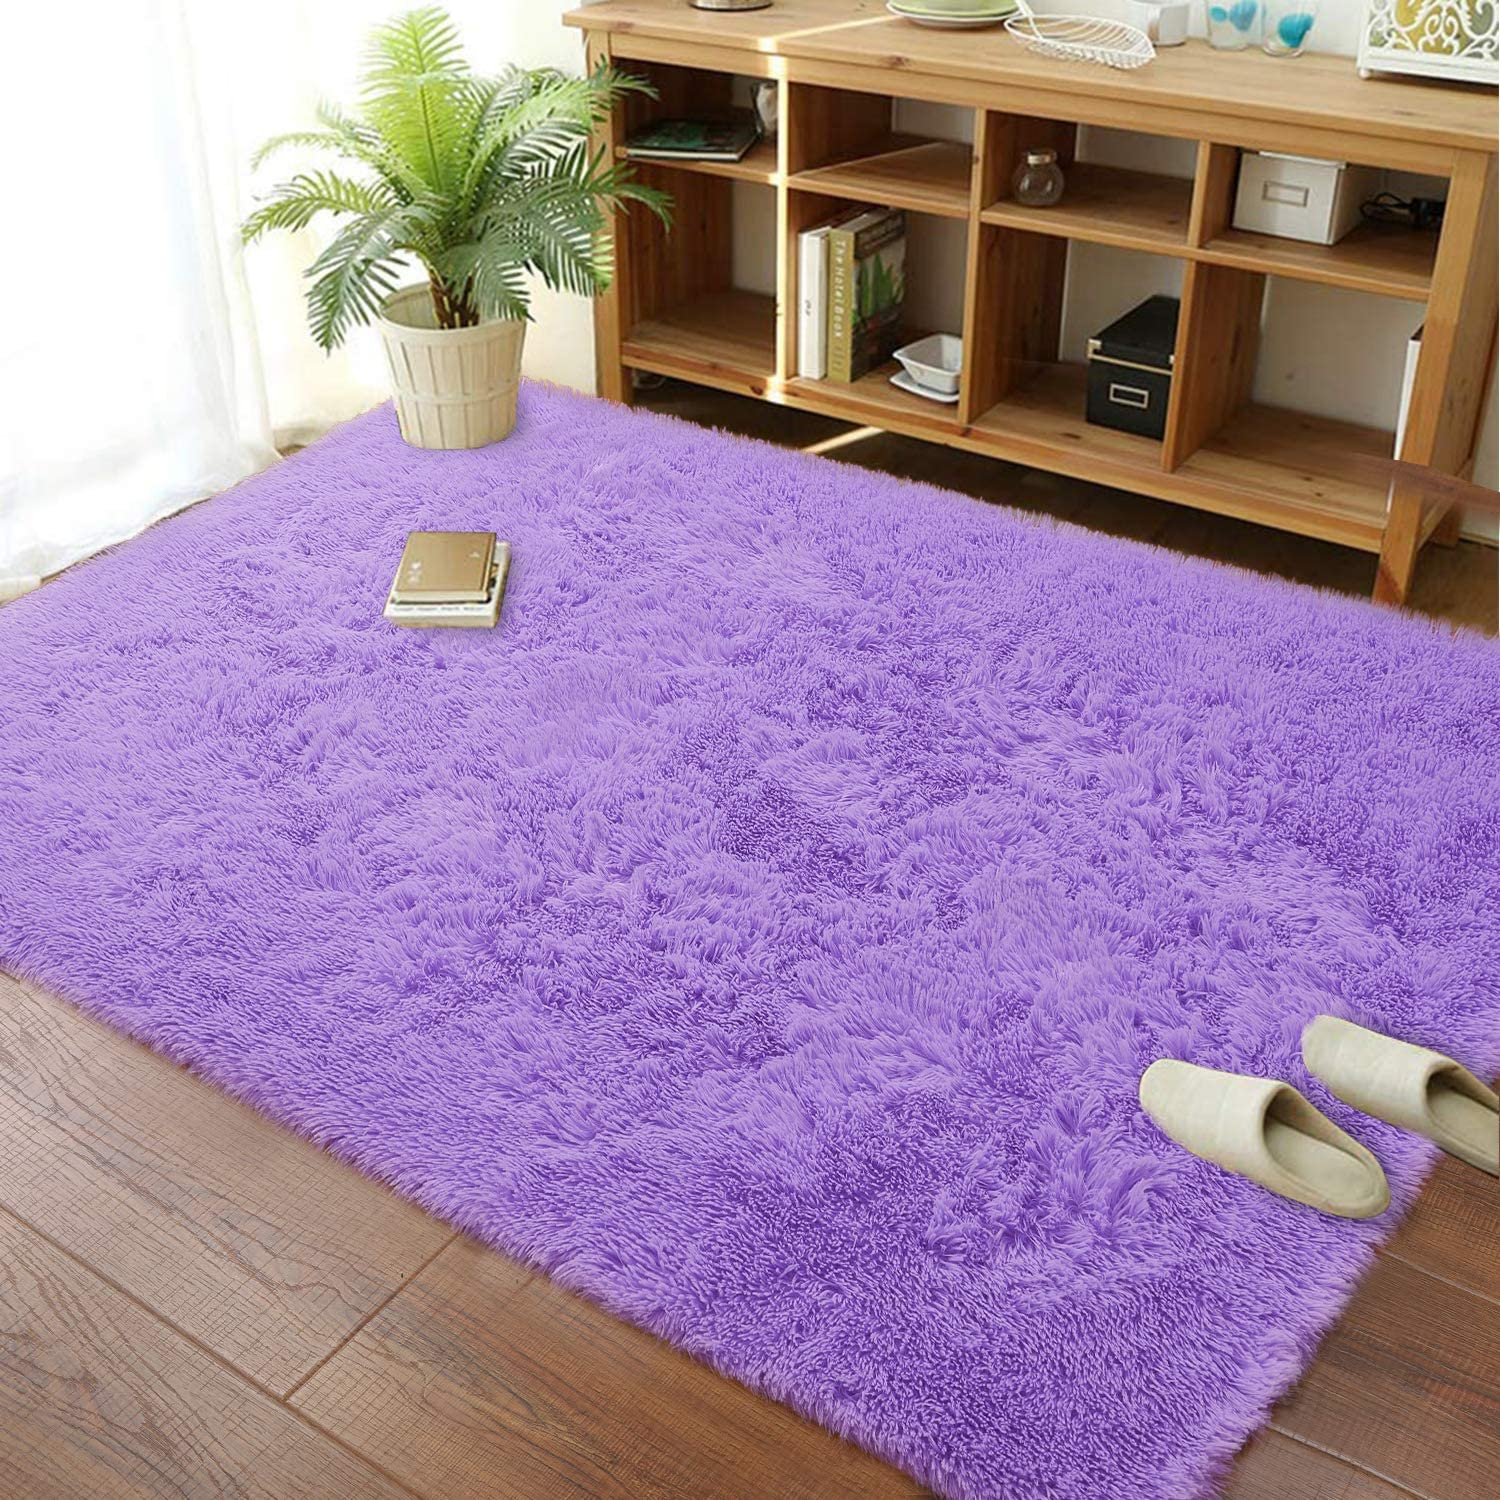 Soft Modern Indoor Large Shaggy Rug for Livingroom Bedroom Dorm Kids Room Home Decorative, Non-Slip Plush Fluffy Furry Fur Area Rugs Comfy Nursery Accent Floor Carpet 6x9 Feet, Purple